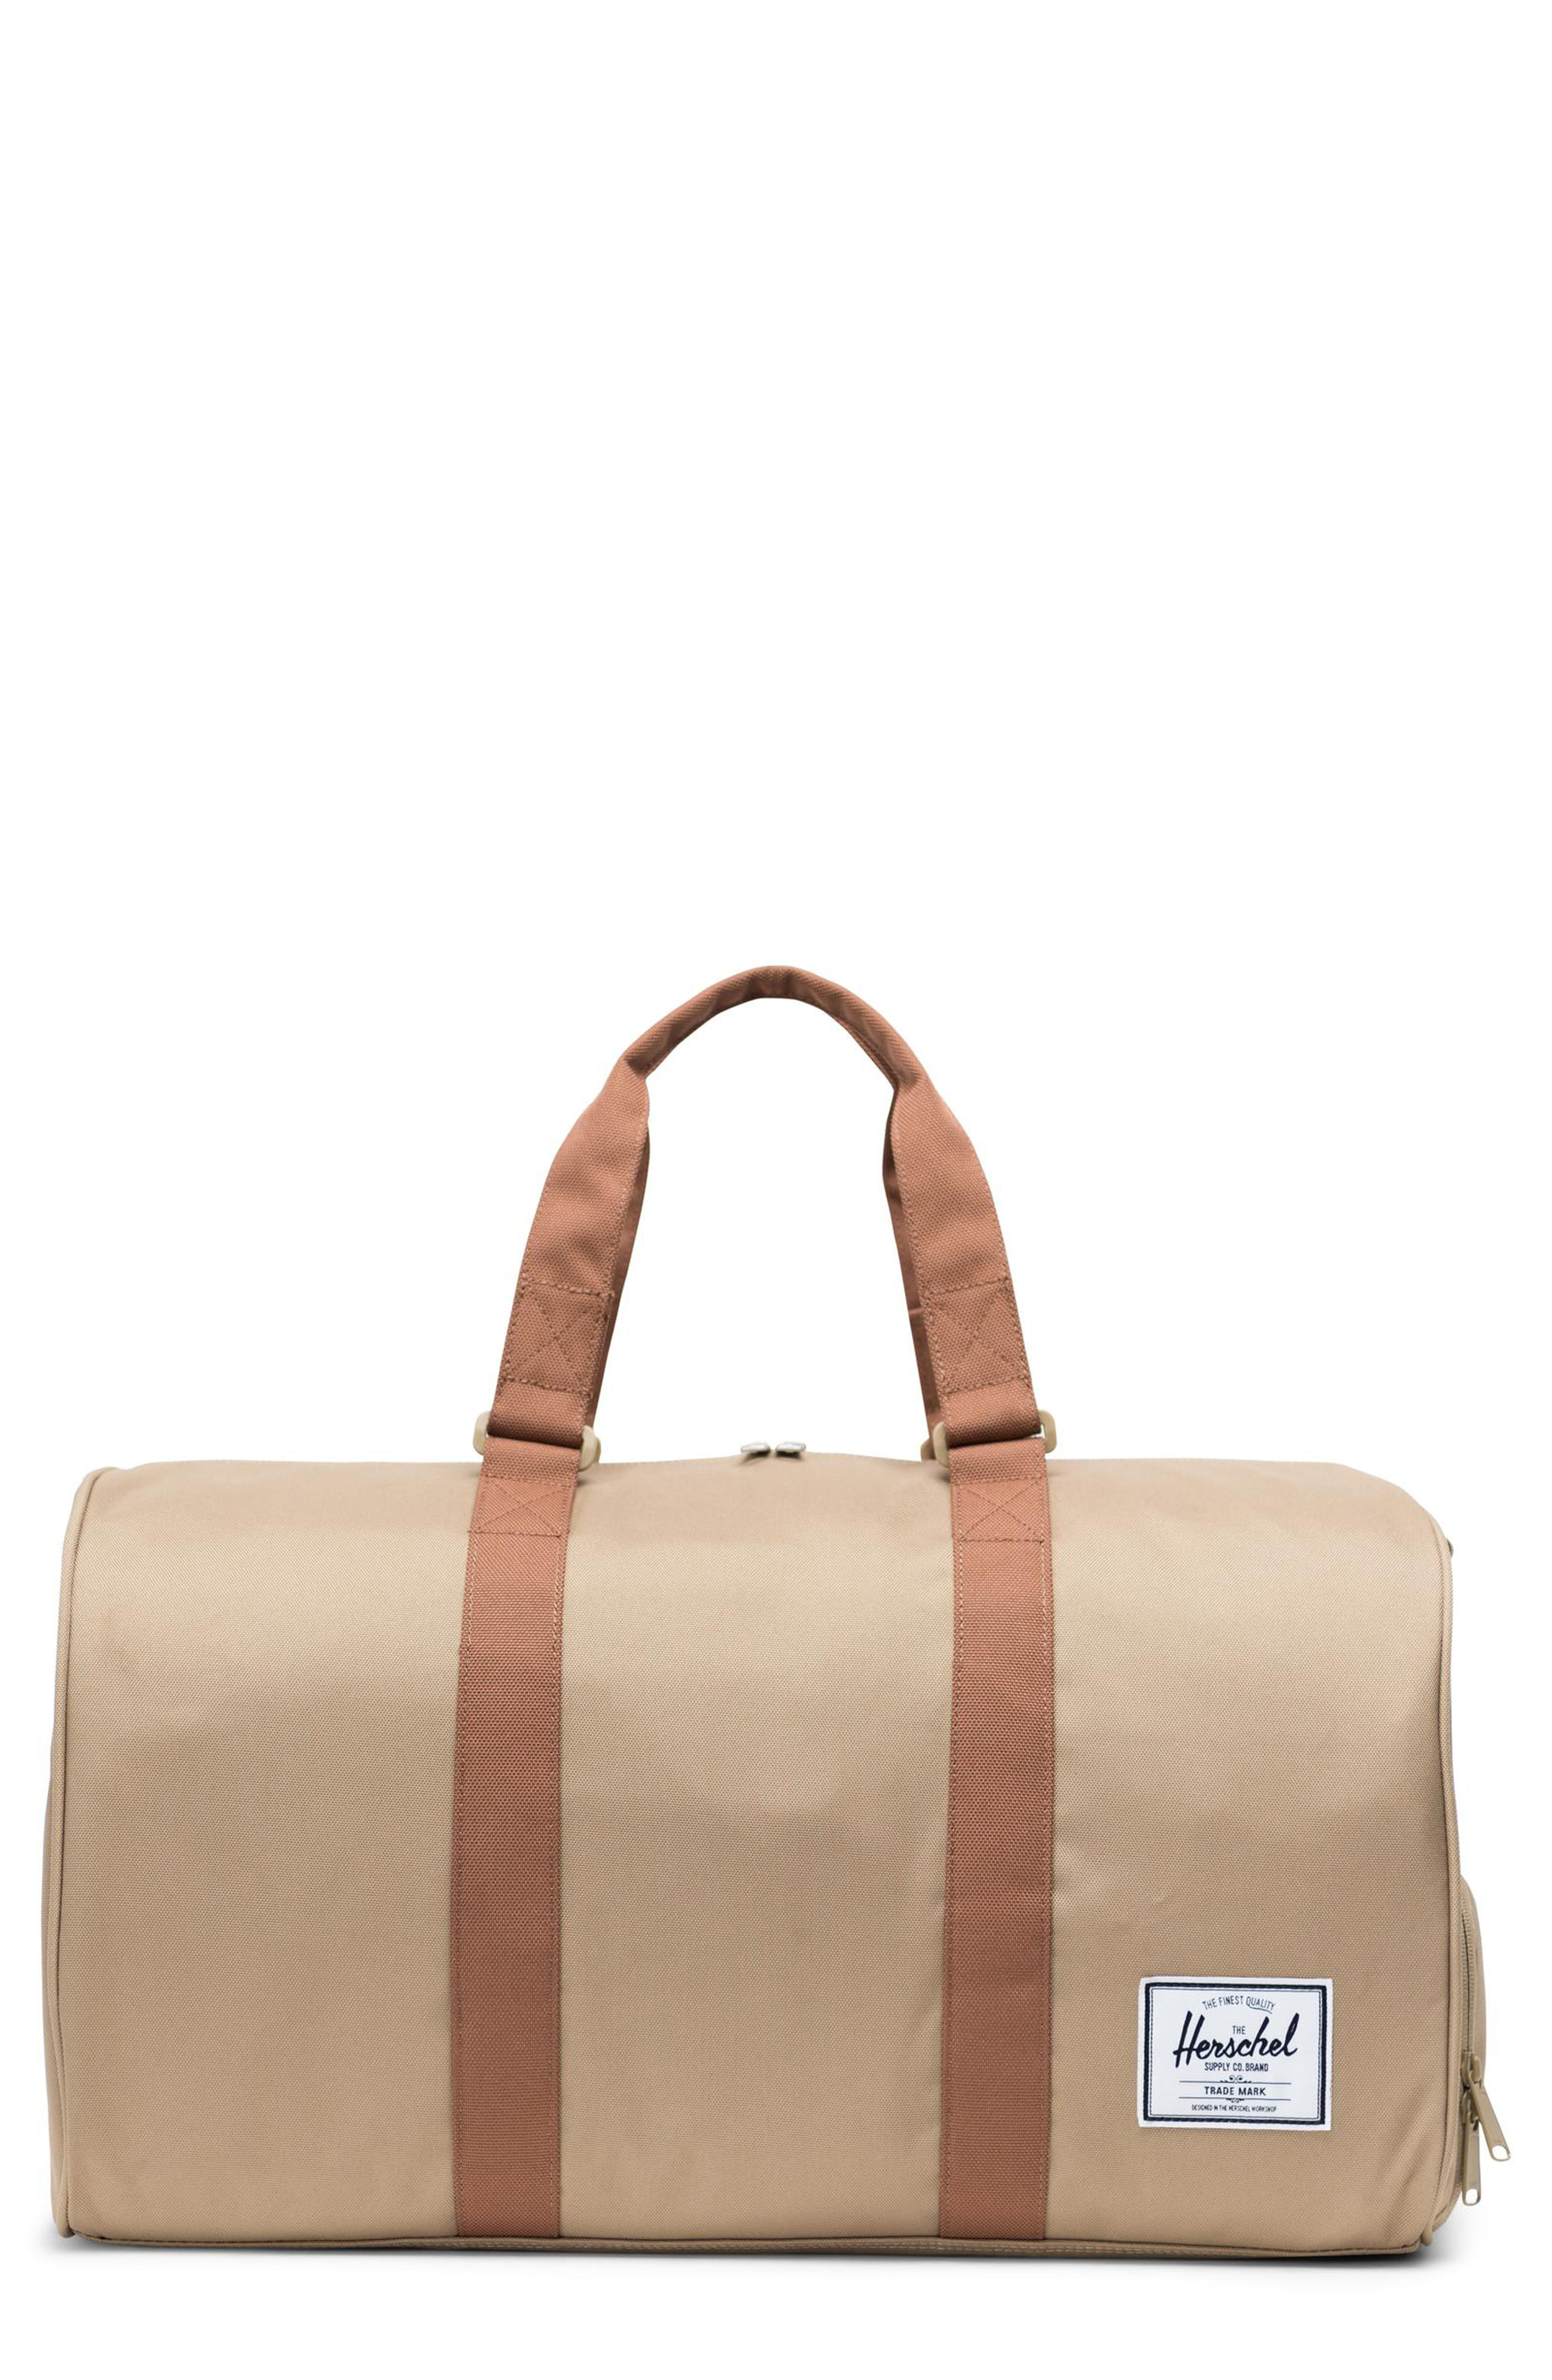 f0624c8e80f Herschel Supply Co. Novel Duffel Bag - Beige In Kelp  Saddle Brown ...